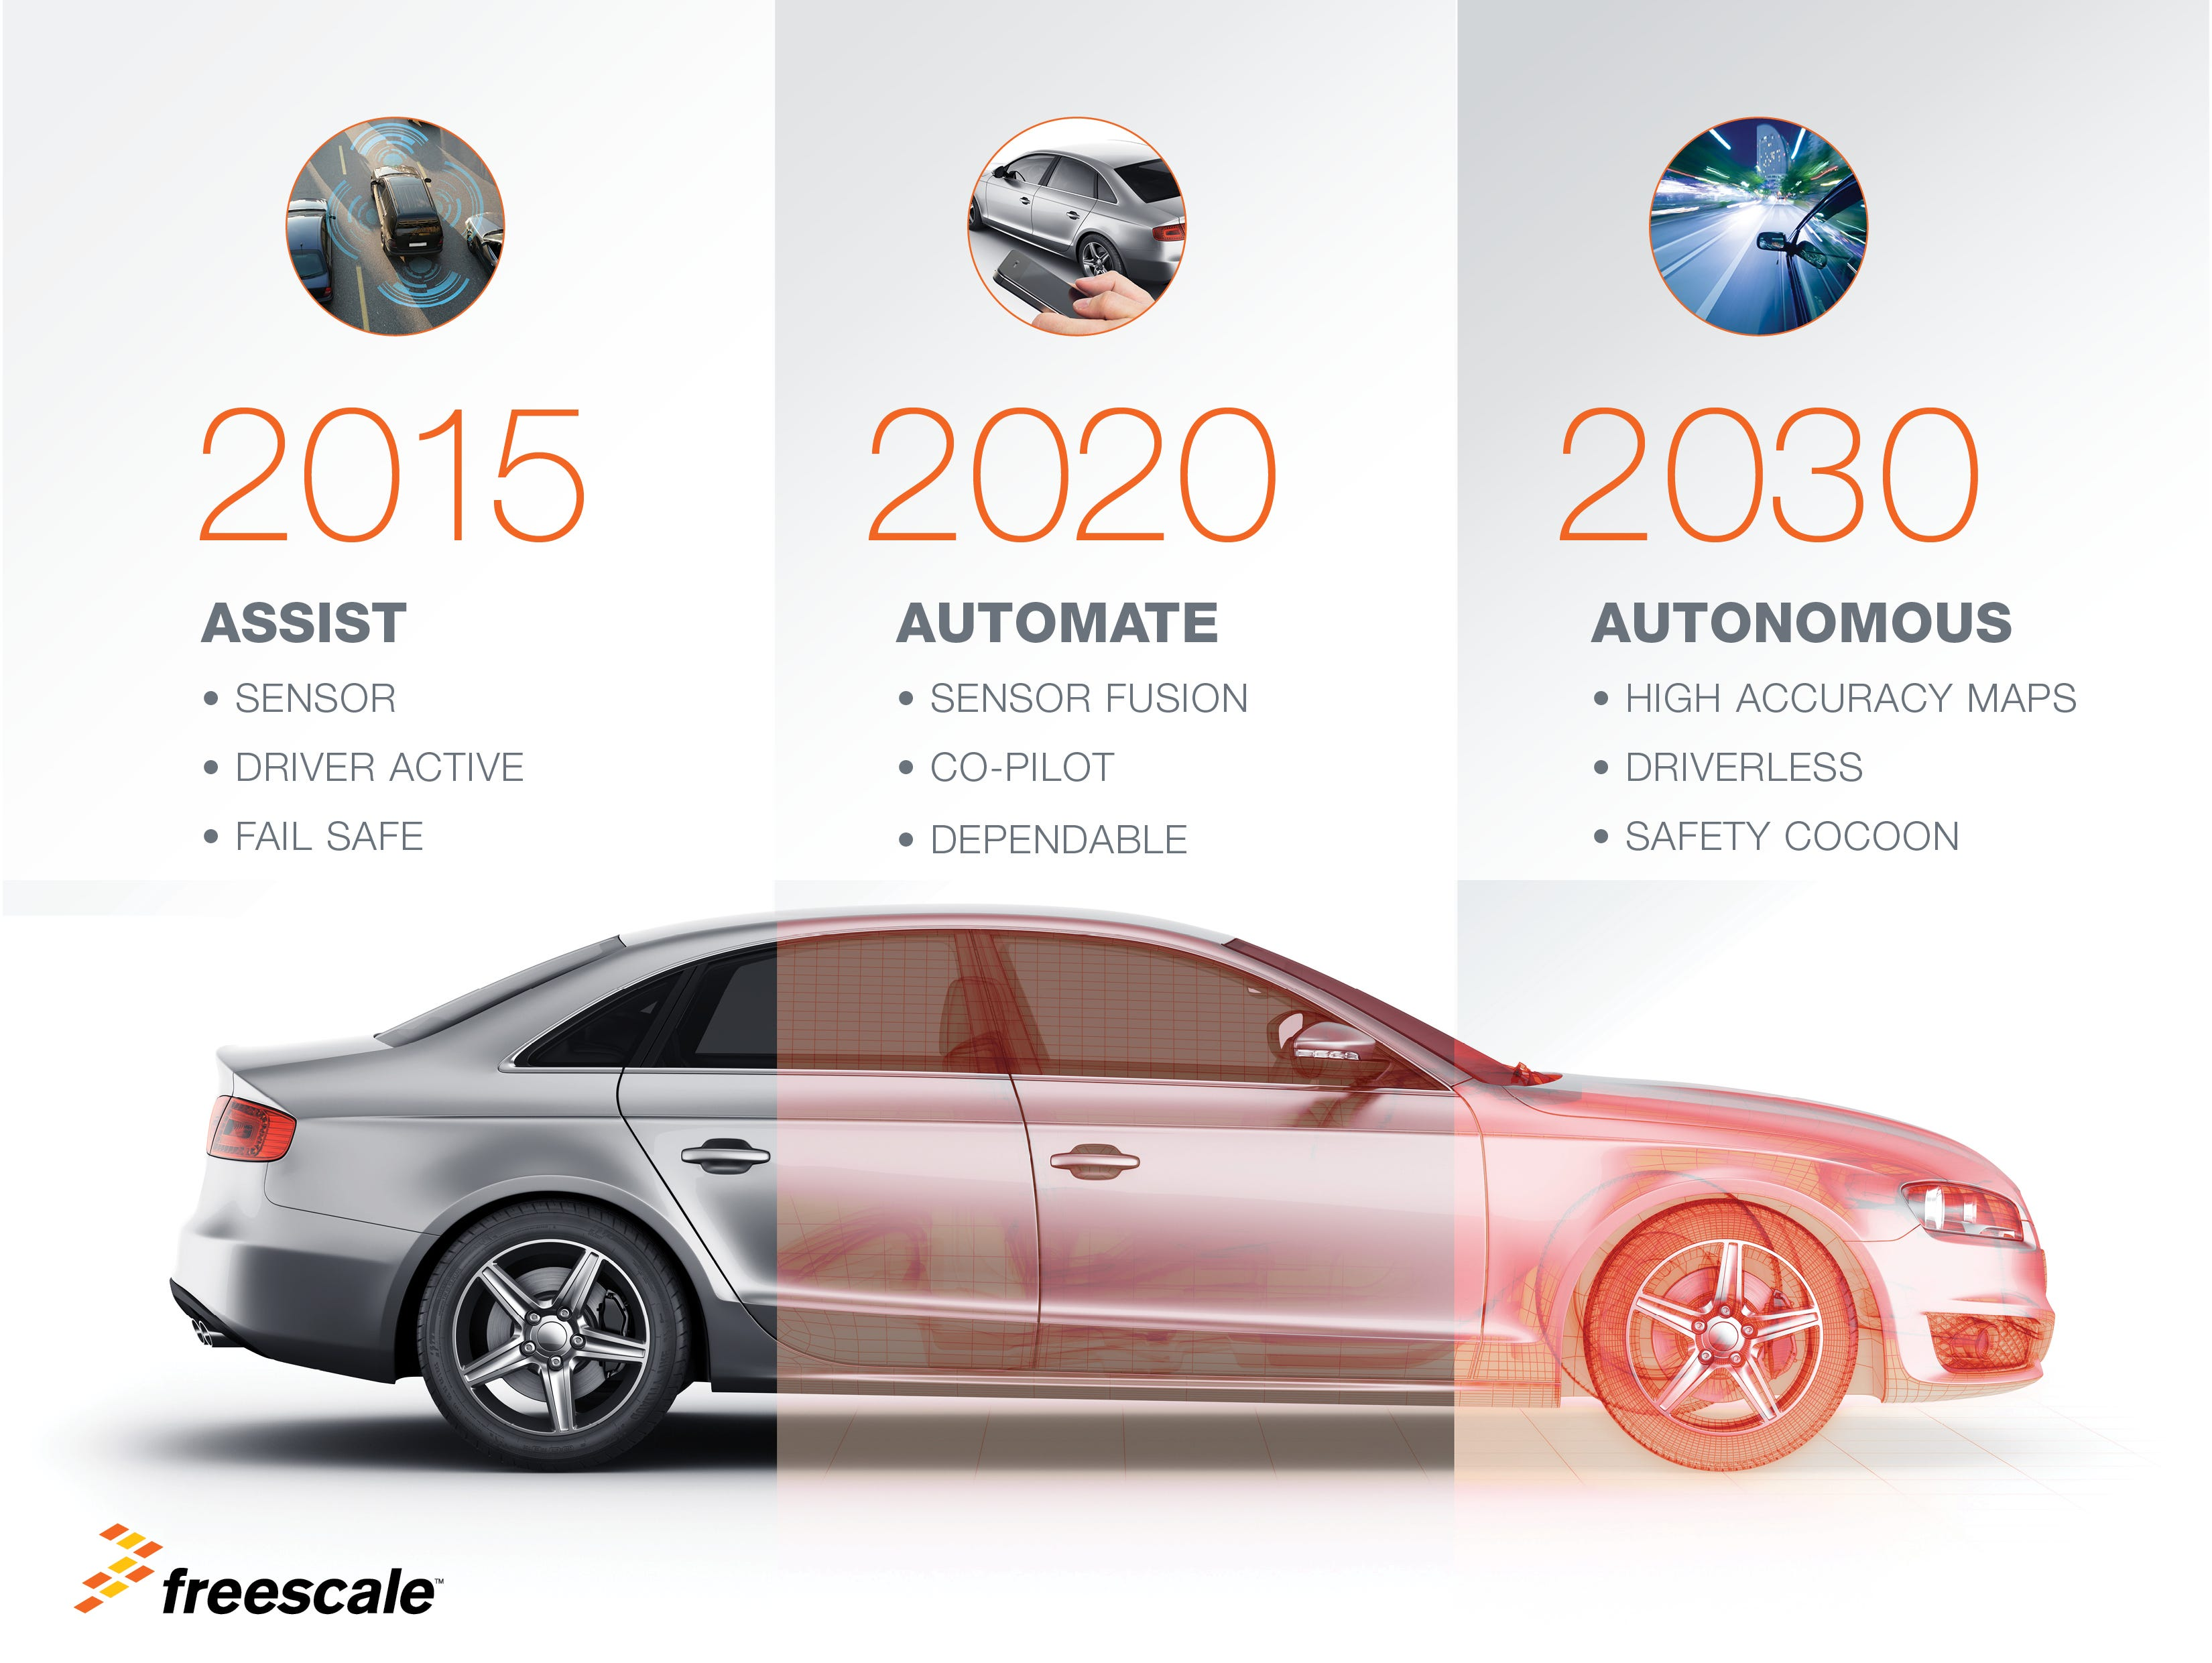 Freescale is unveiling a new chip to power the self-driving cars of the near future.